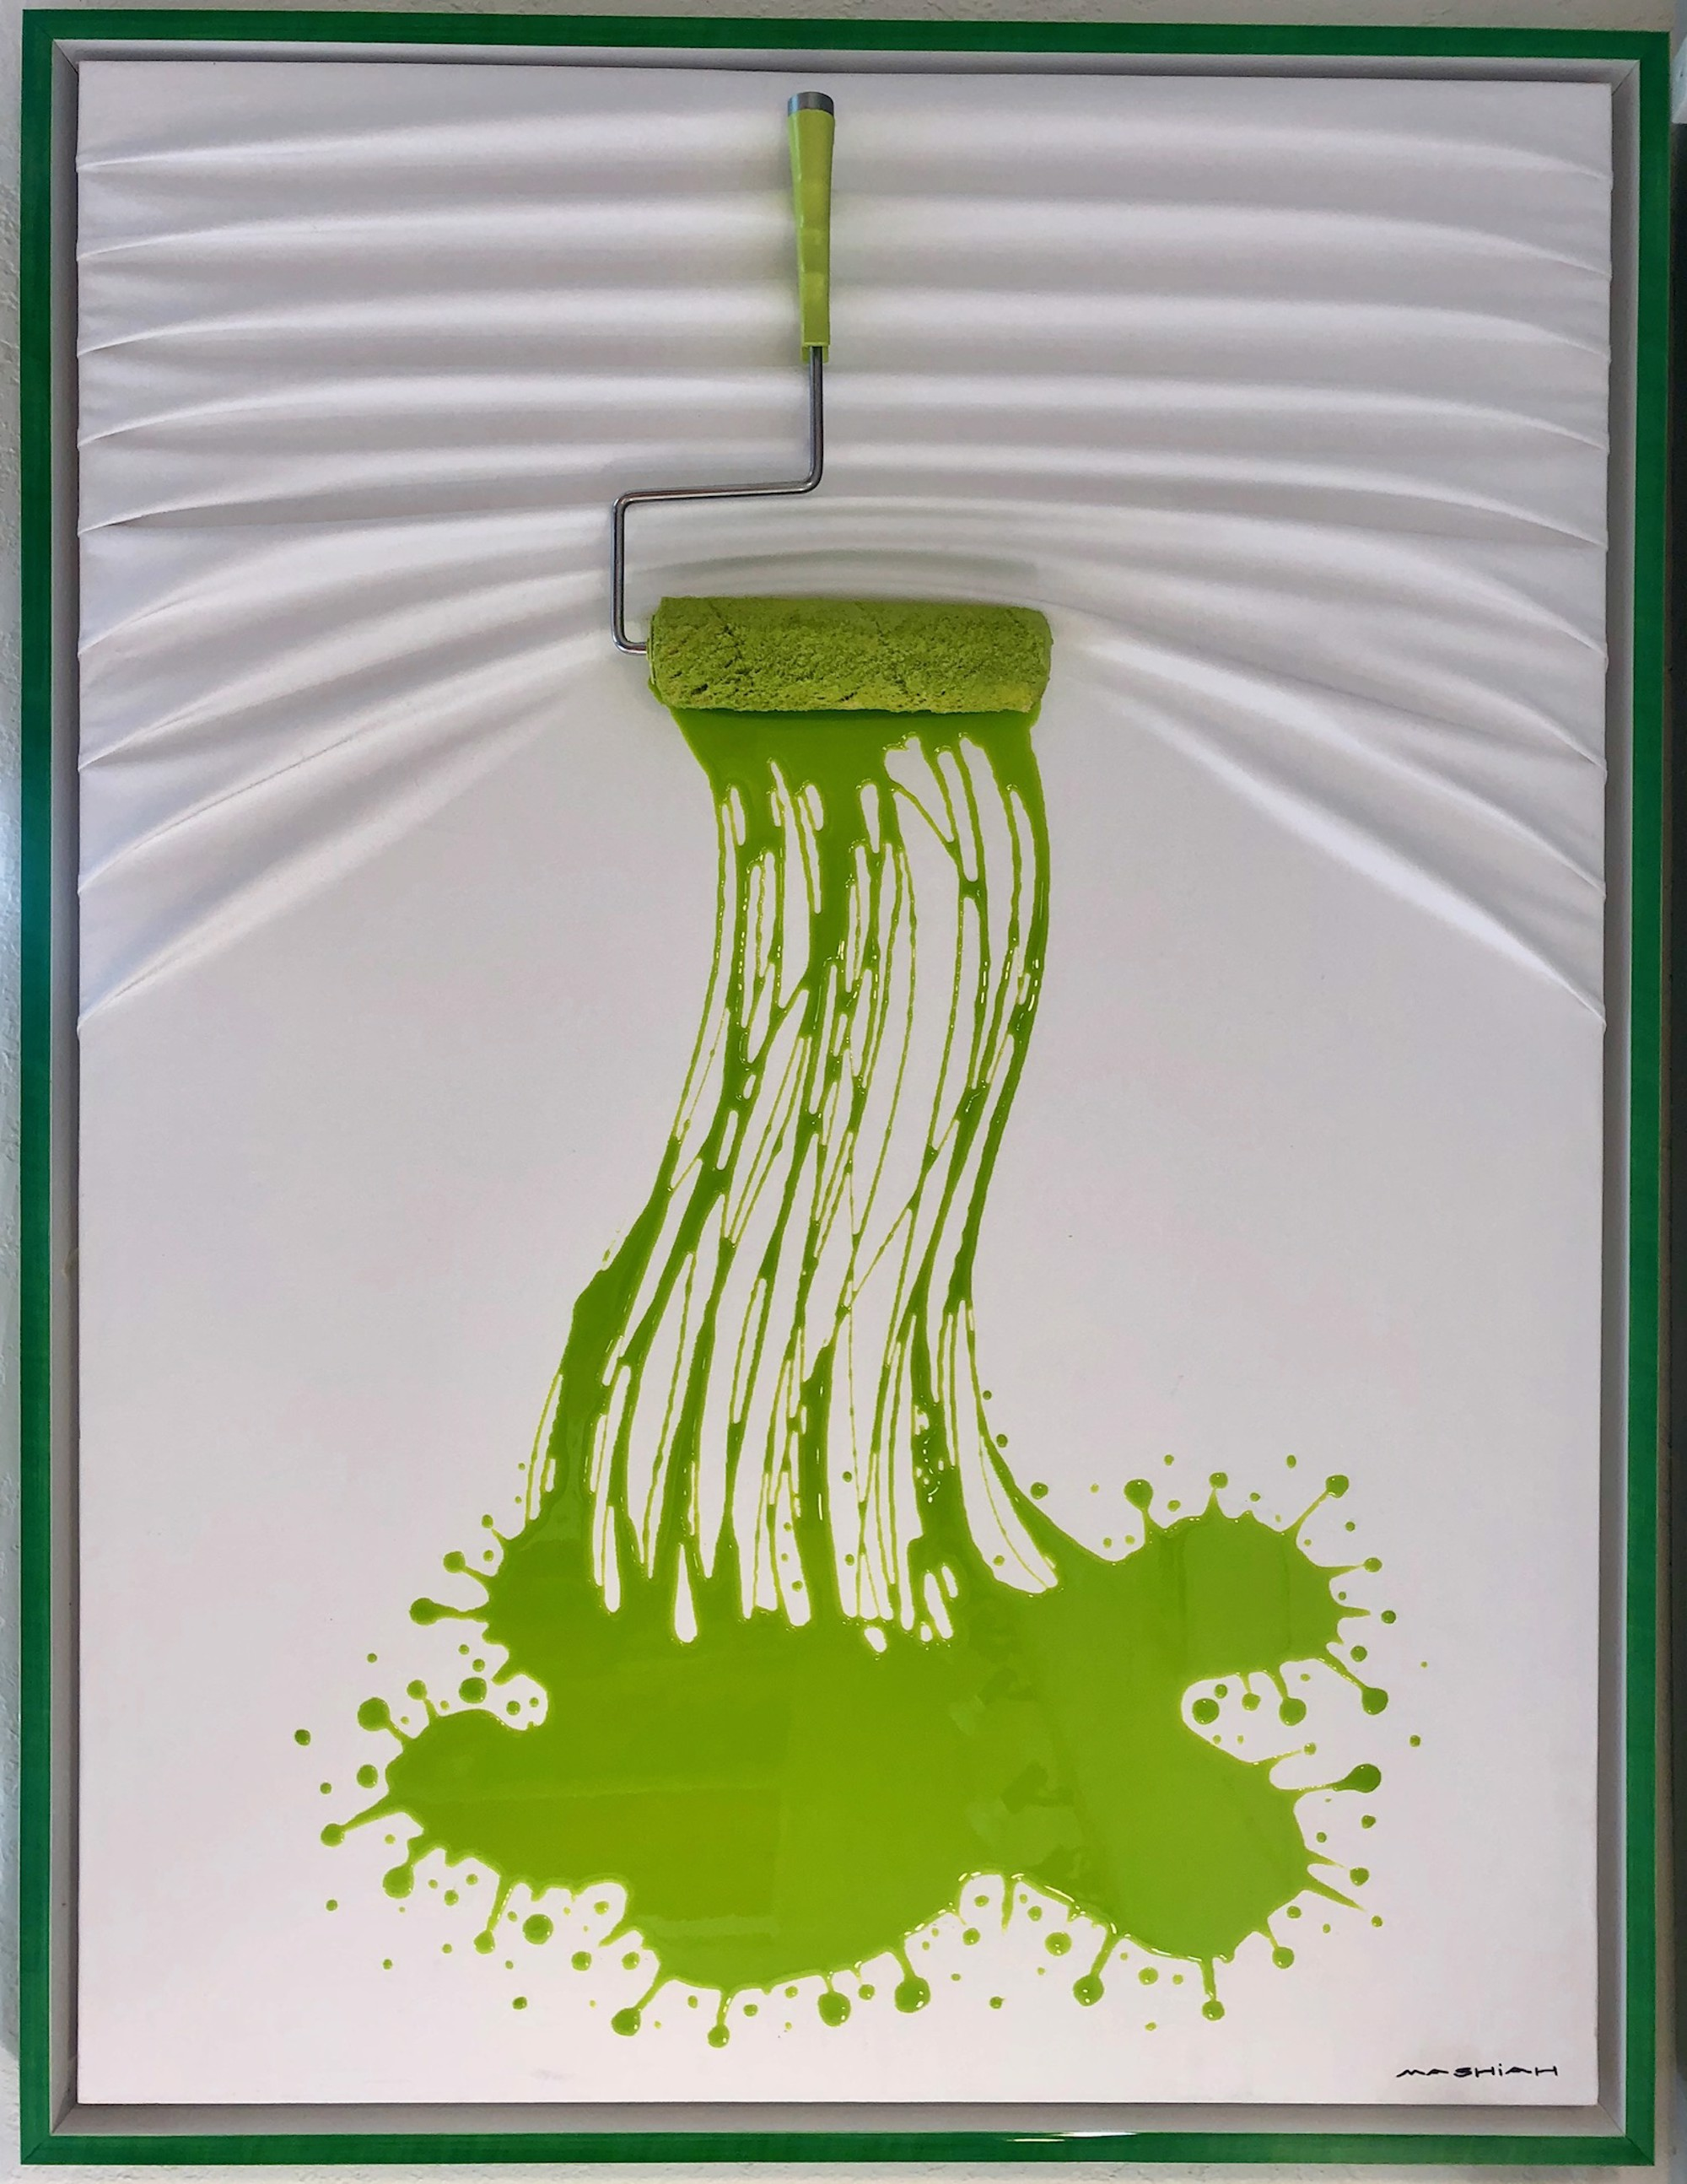 """Let's Paint"" Roller, Green splash on White by Efi Mashiah"